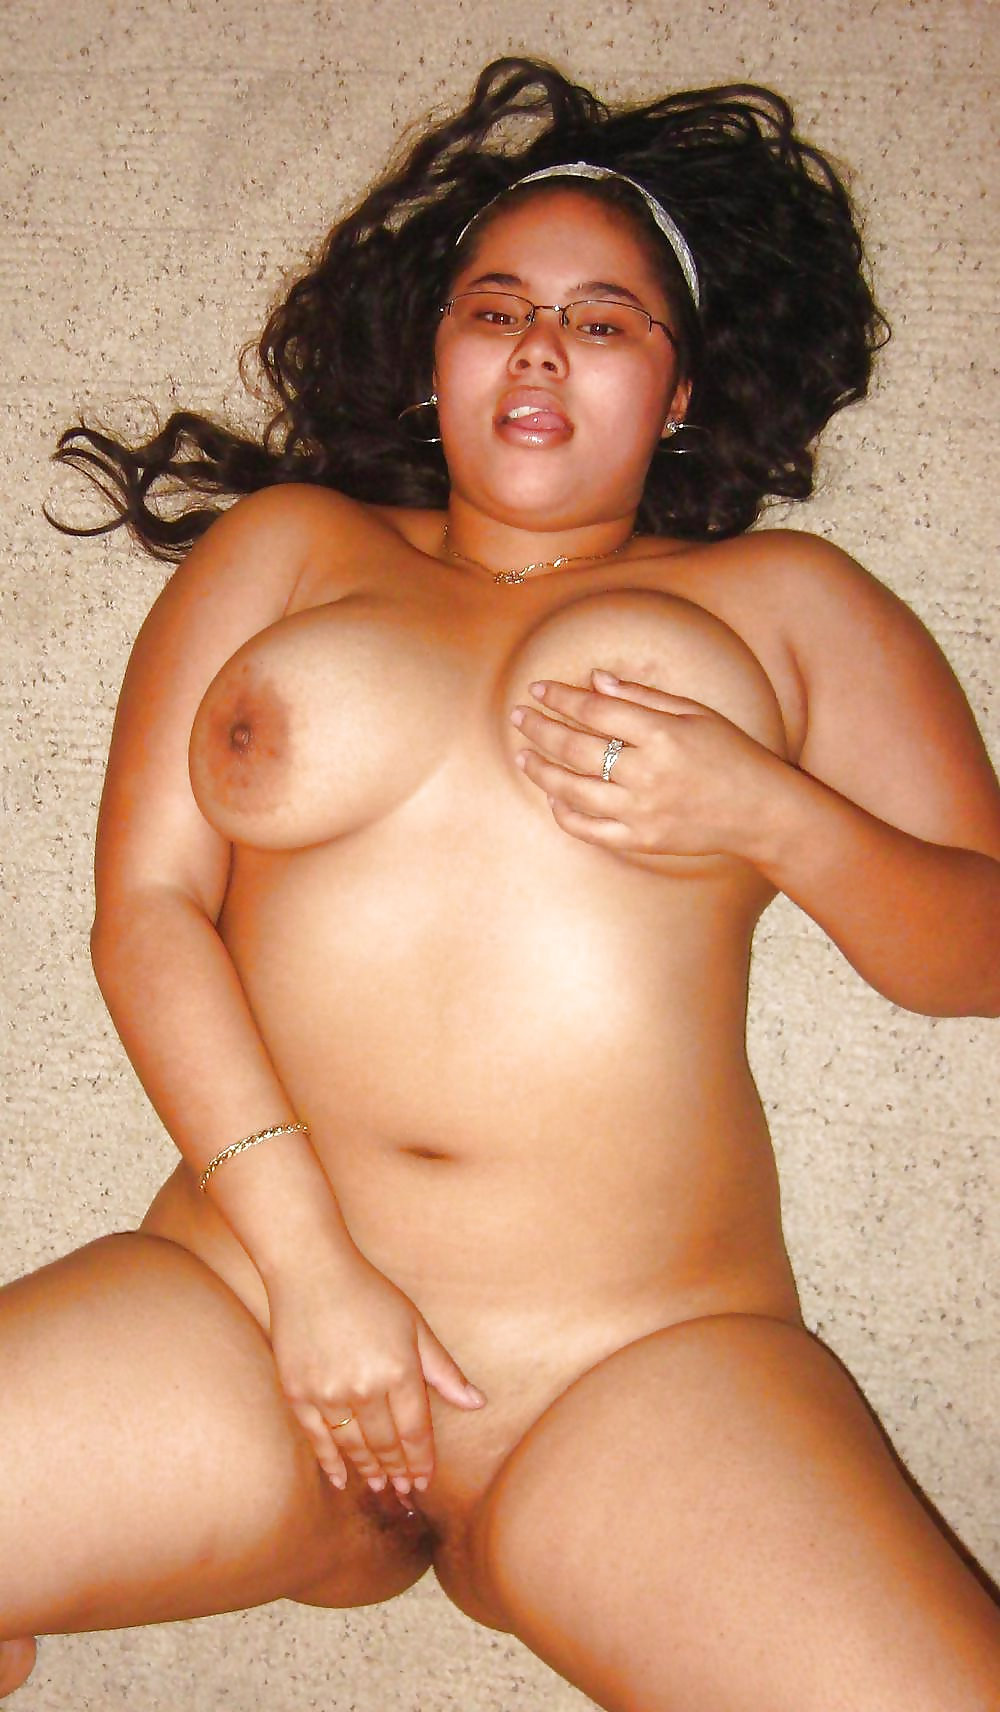 shakeela-chubby-nude-small-breasted-tiny-naked-hursite-girls